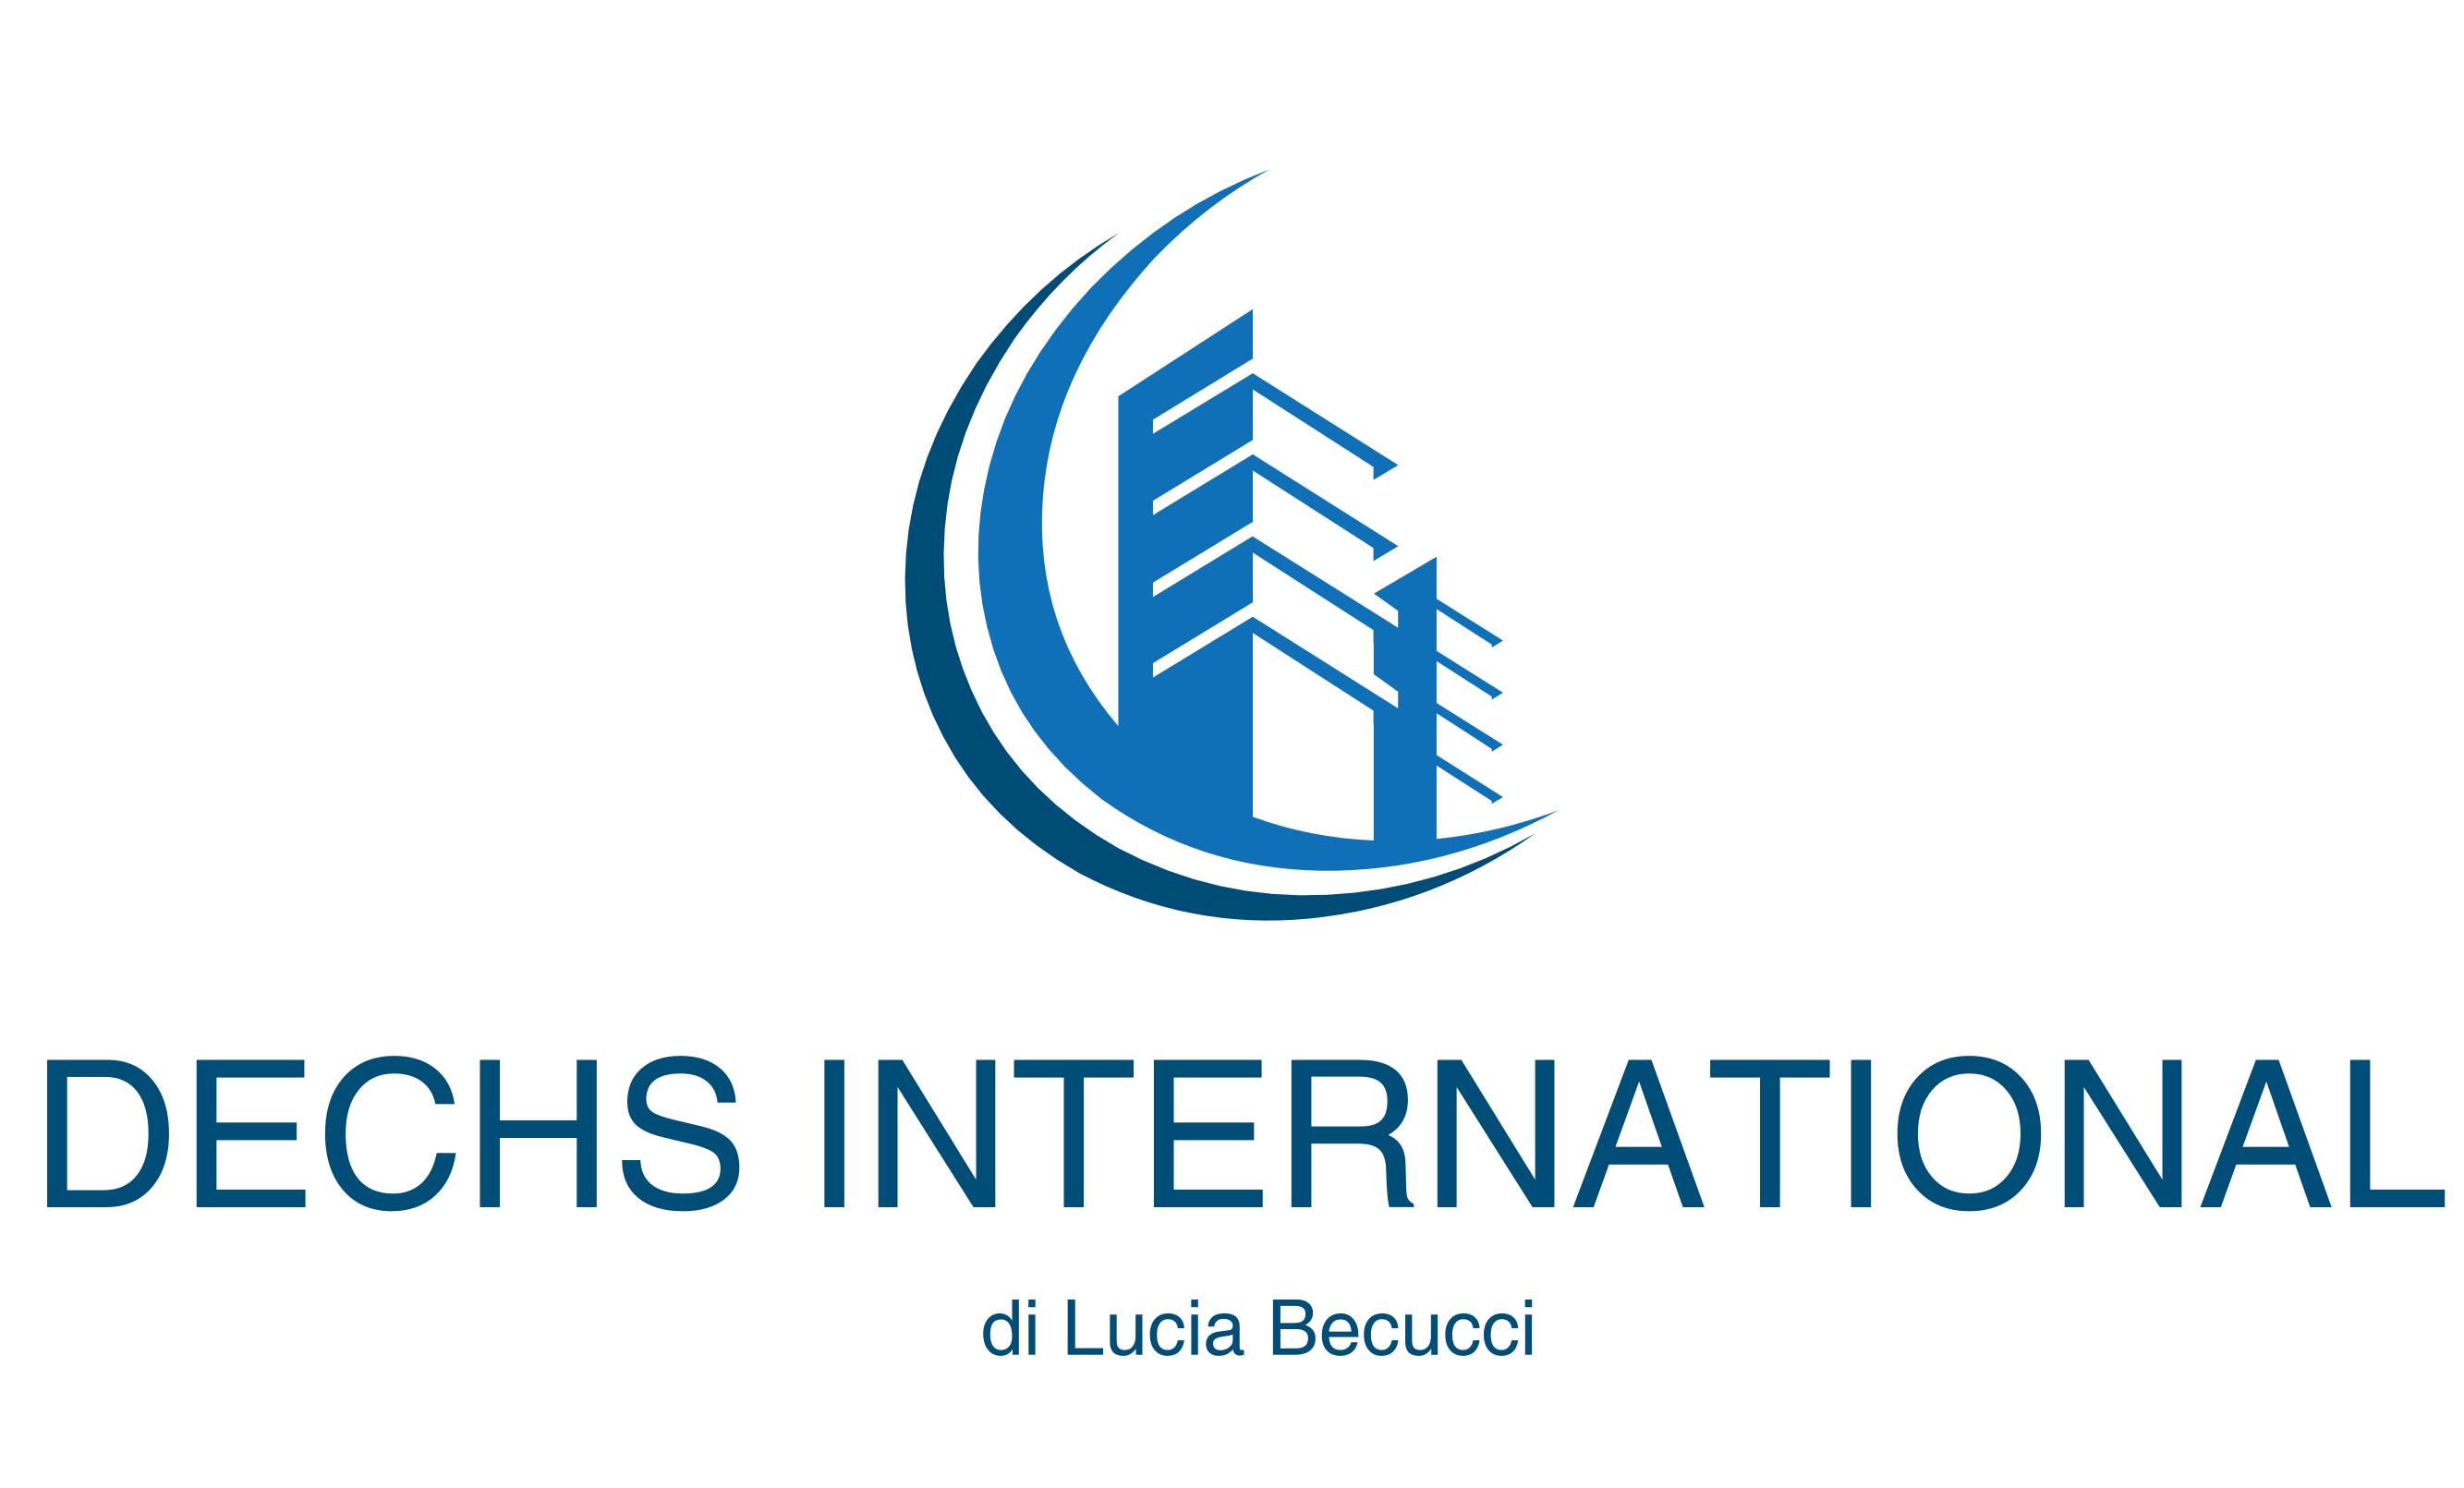 logo DECHS INTERNATIONAL DI LUCIA BECUCCI